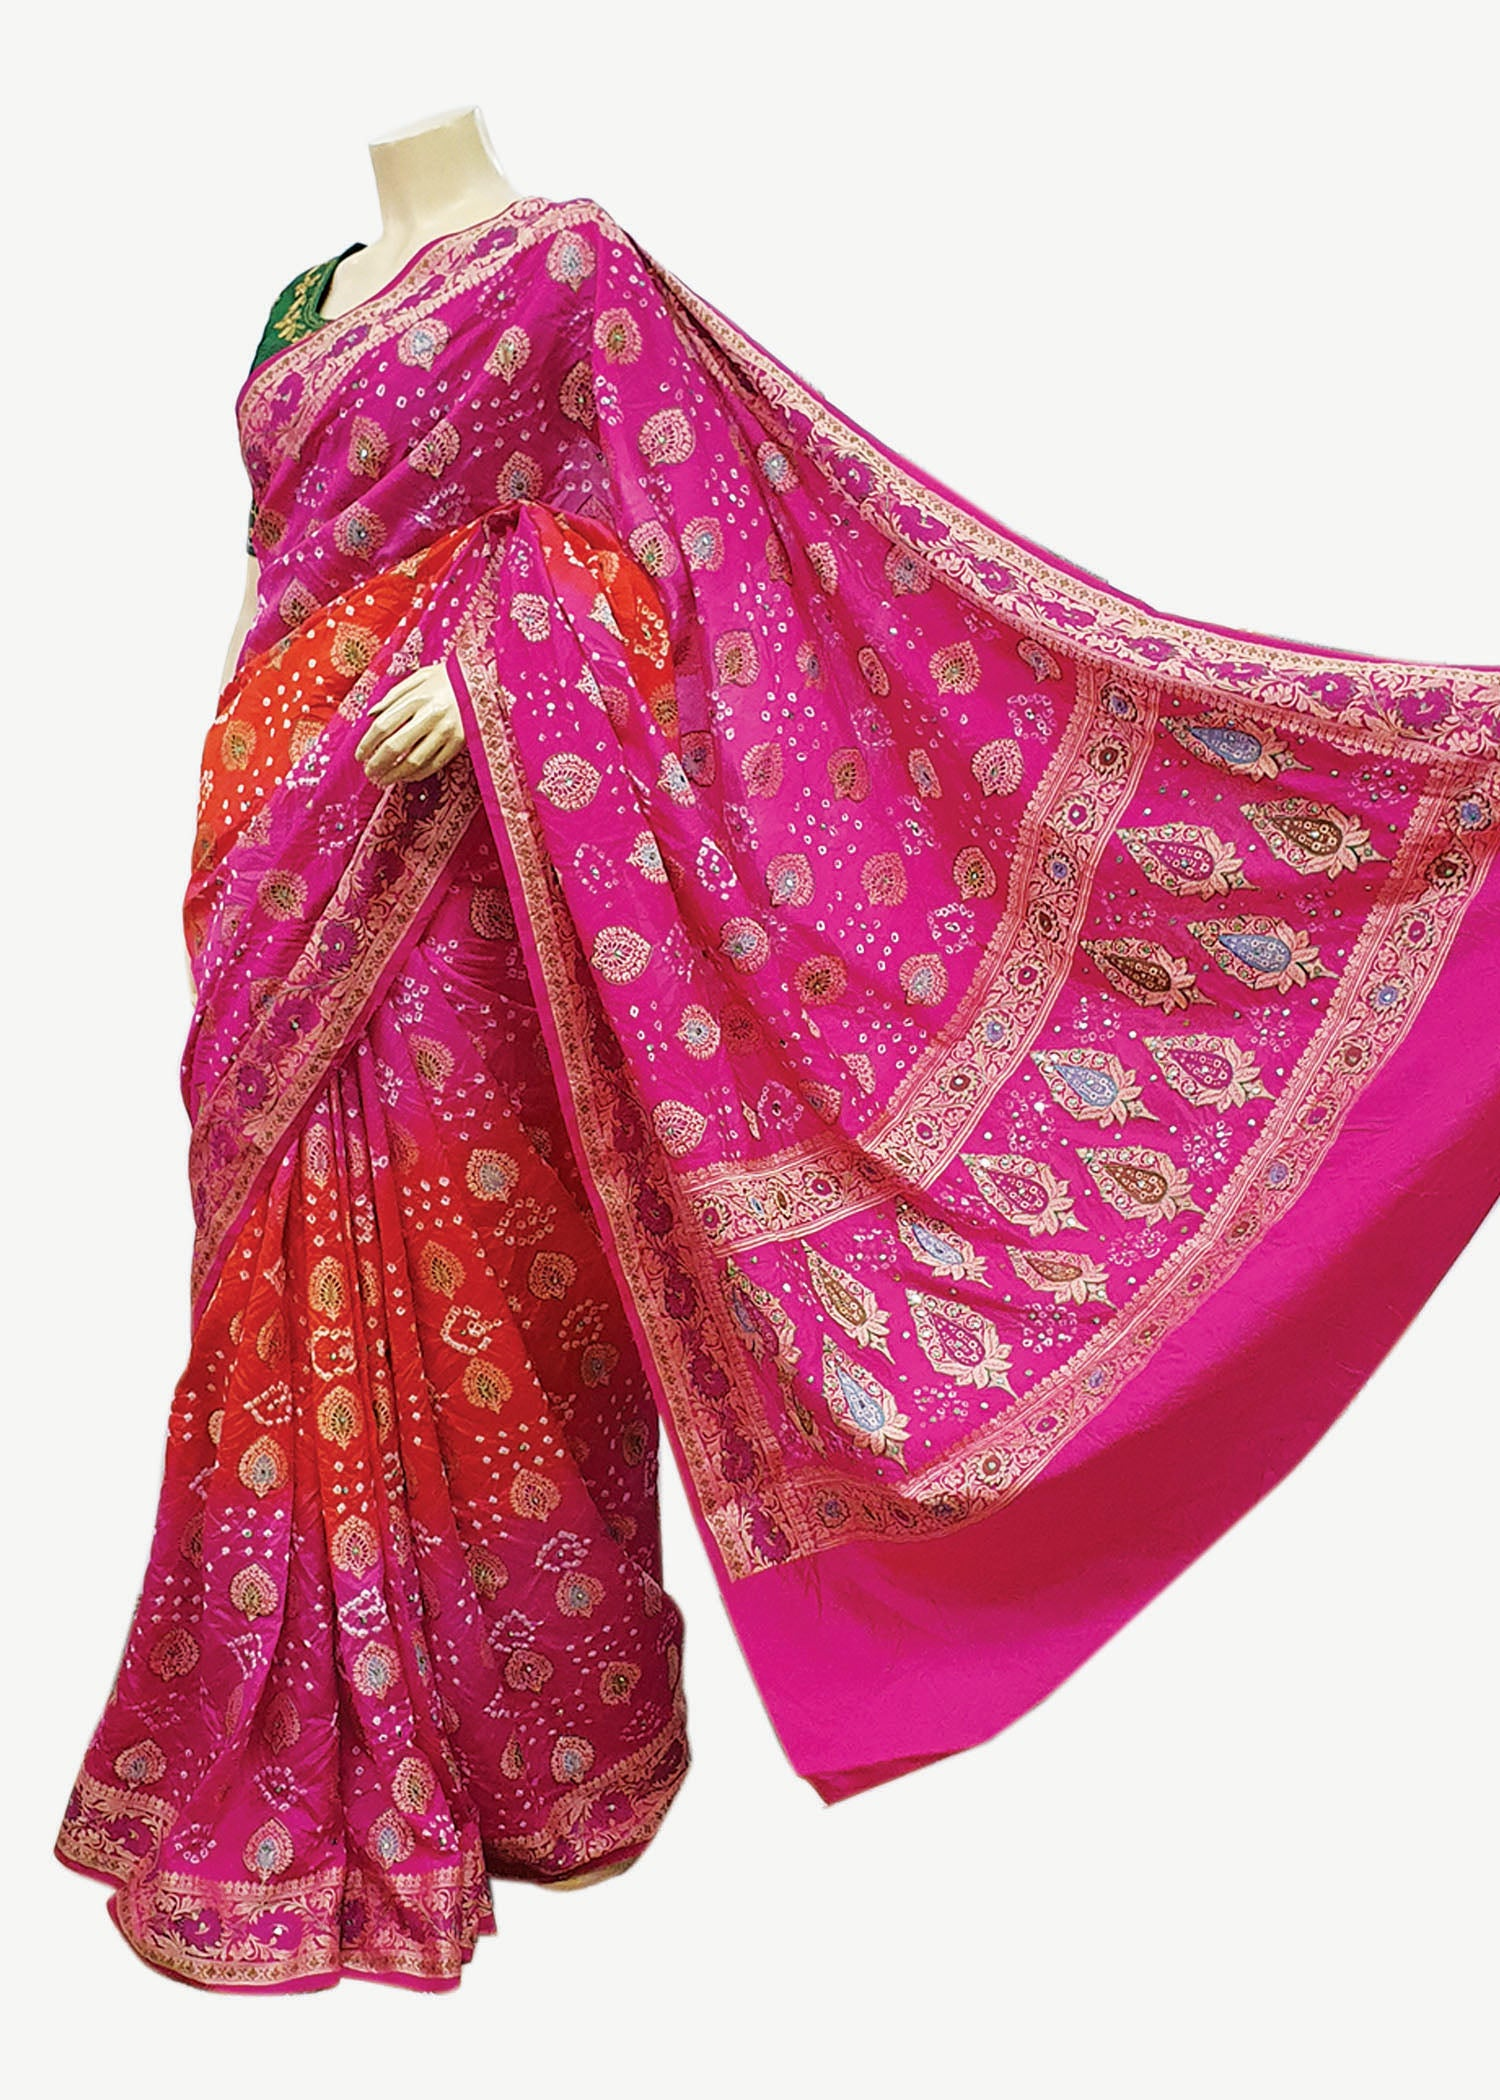 Pink-Orange Georgette Bandhani Saree